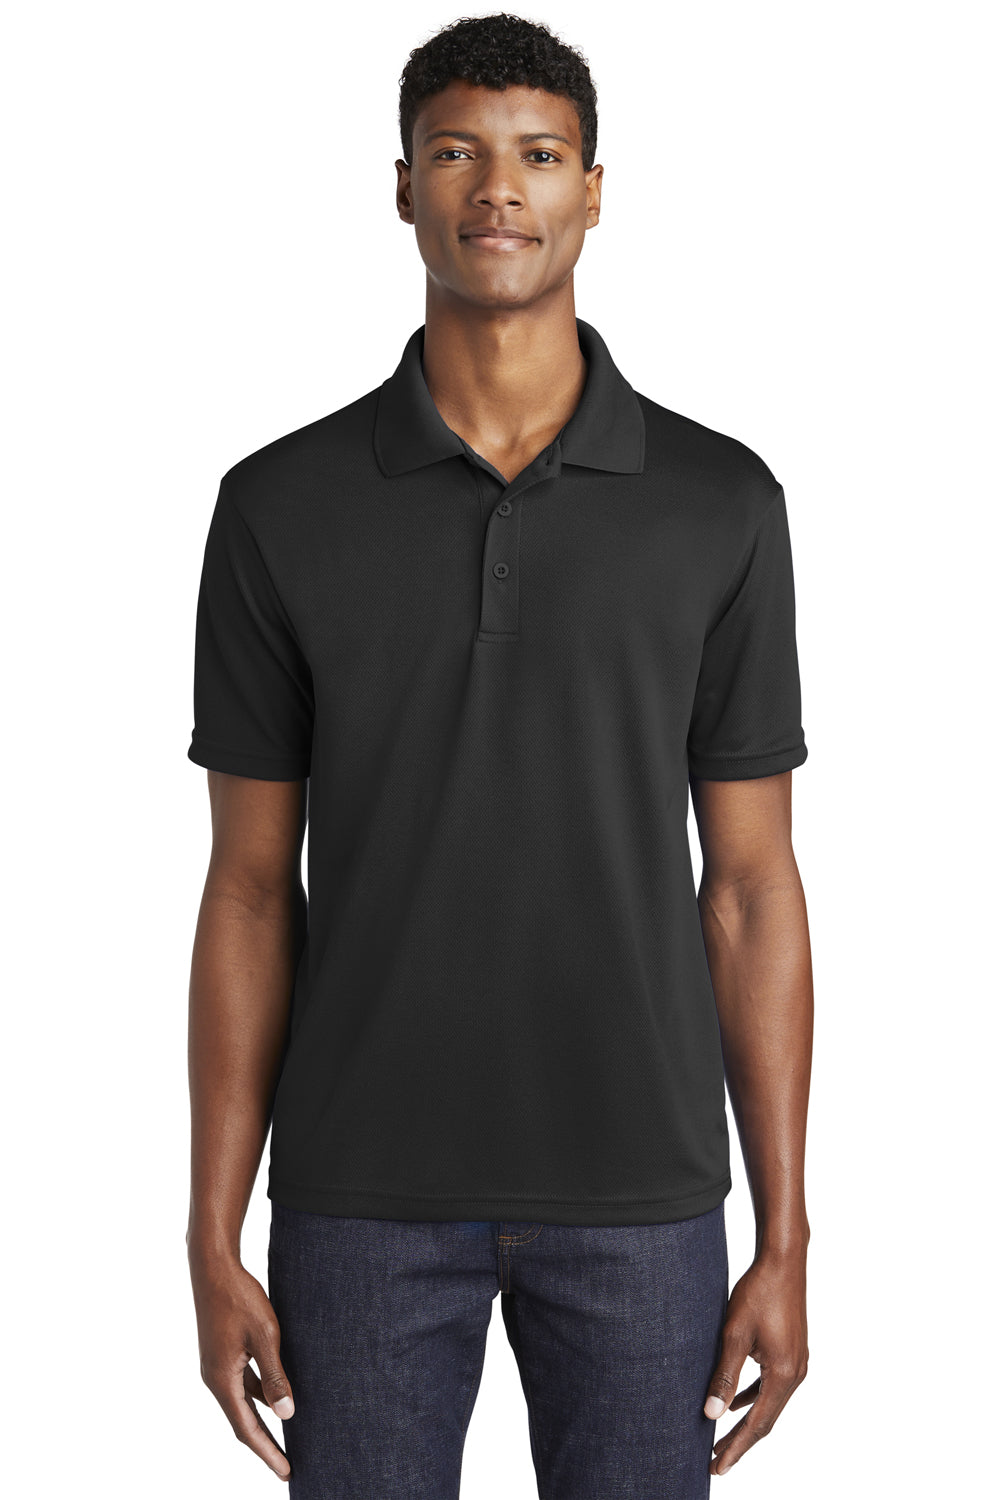 Sport-Tek ST640 Mens RacerMesh Moisture Wicking Short Sleeve Polo Shirt Black Front